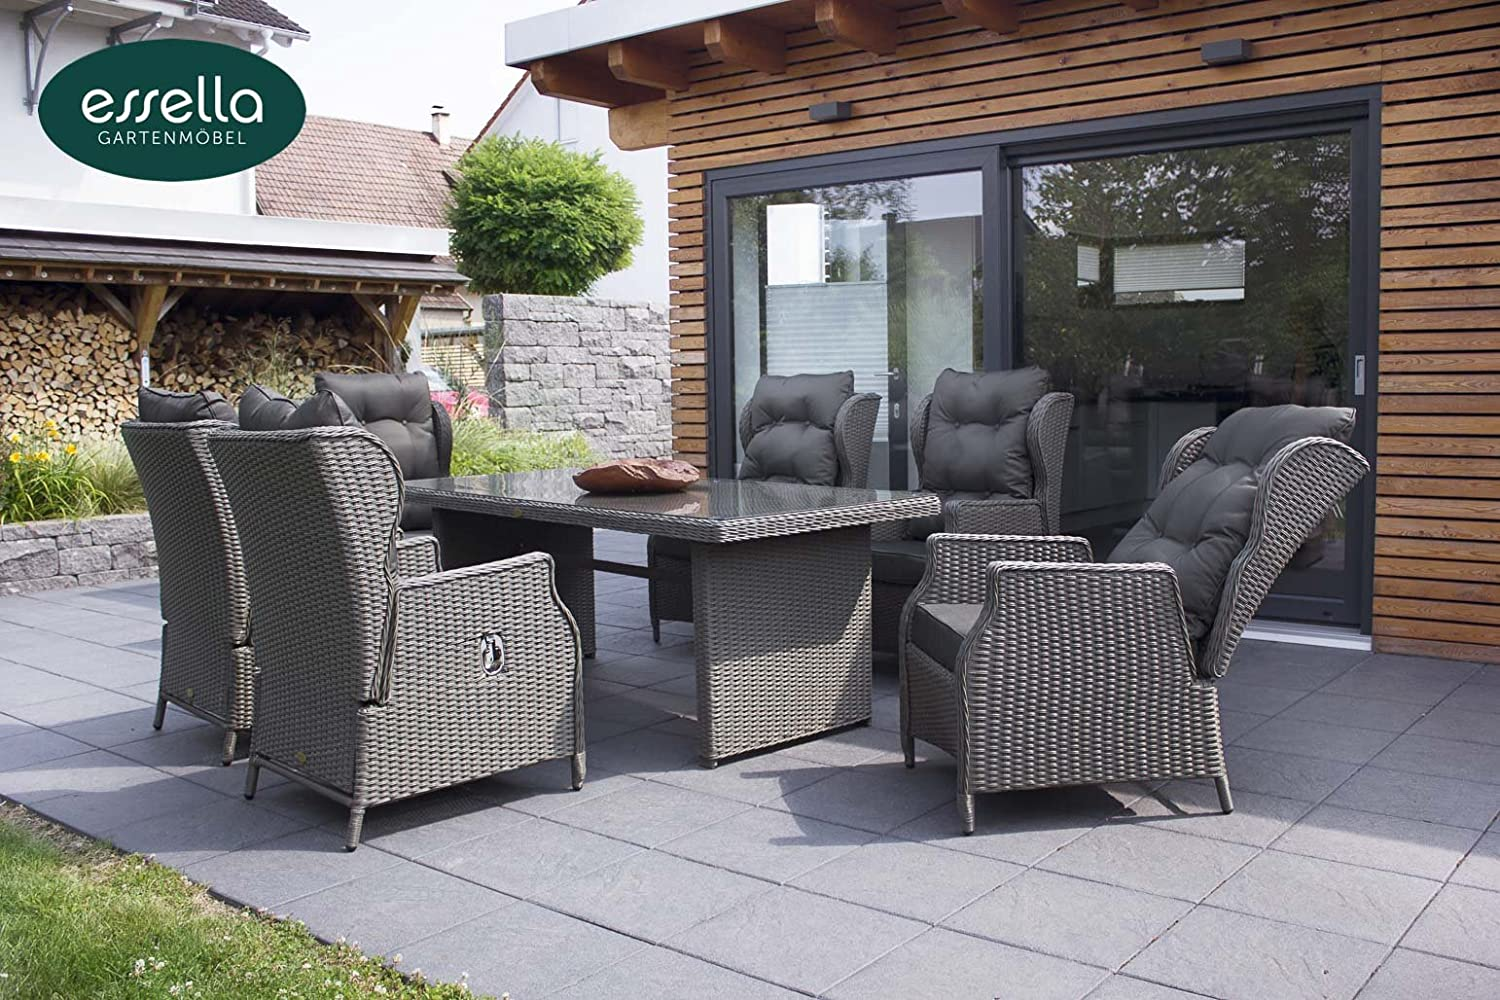 polyrattan sitzgruppe kingston 6 personen rundgeflecht grau rund gartenm bel. Black Bedroom Furniture Sets. Home Design Ideas